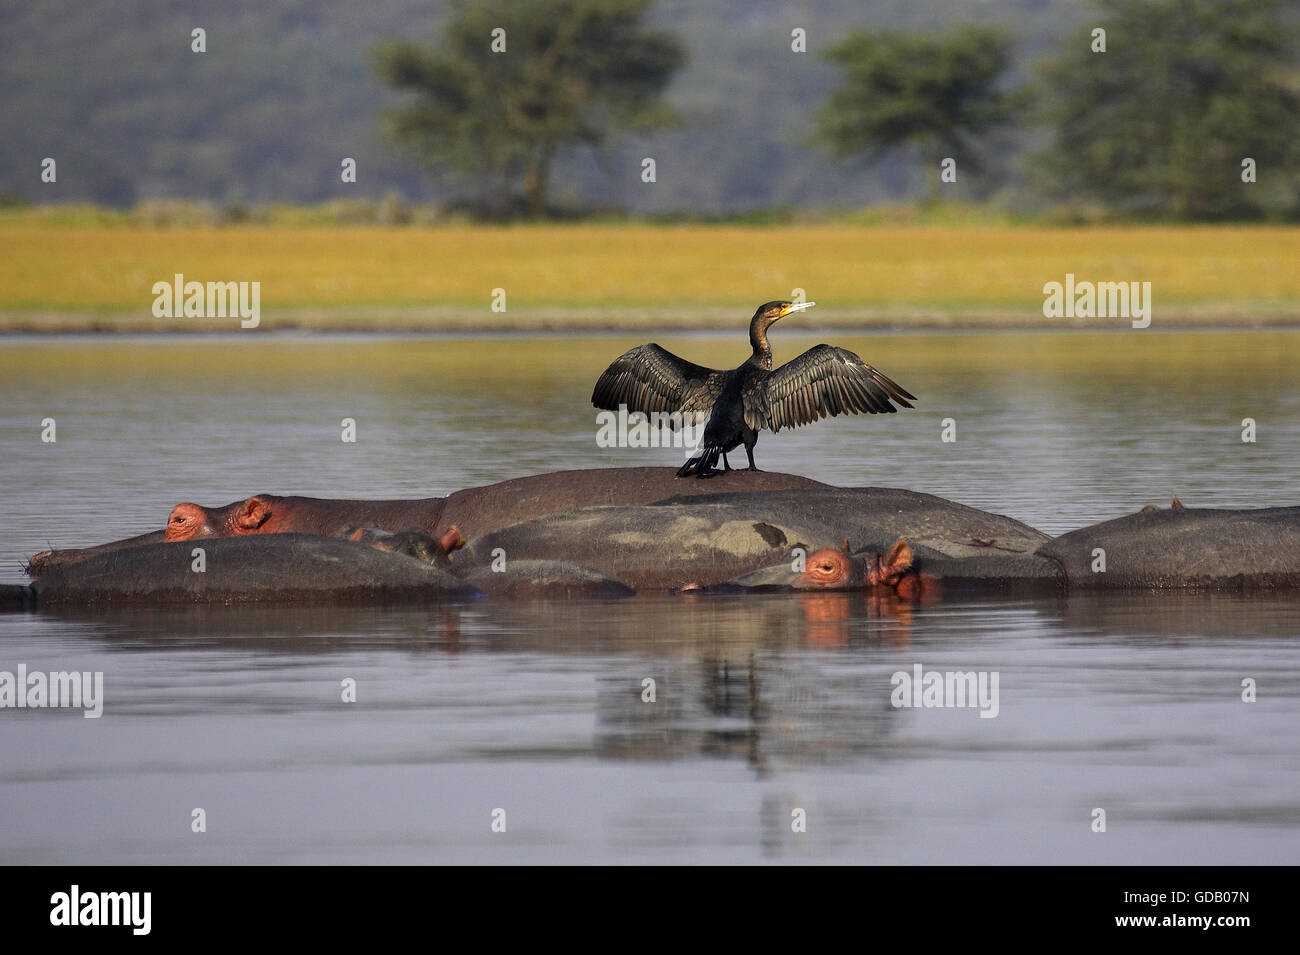 Reed Cormorant or Long-Tailed Cormorant, phalacrocorax africanus, Adult Drying Wings on the Back of Hippopotamus, - Stock Image